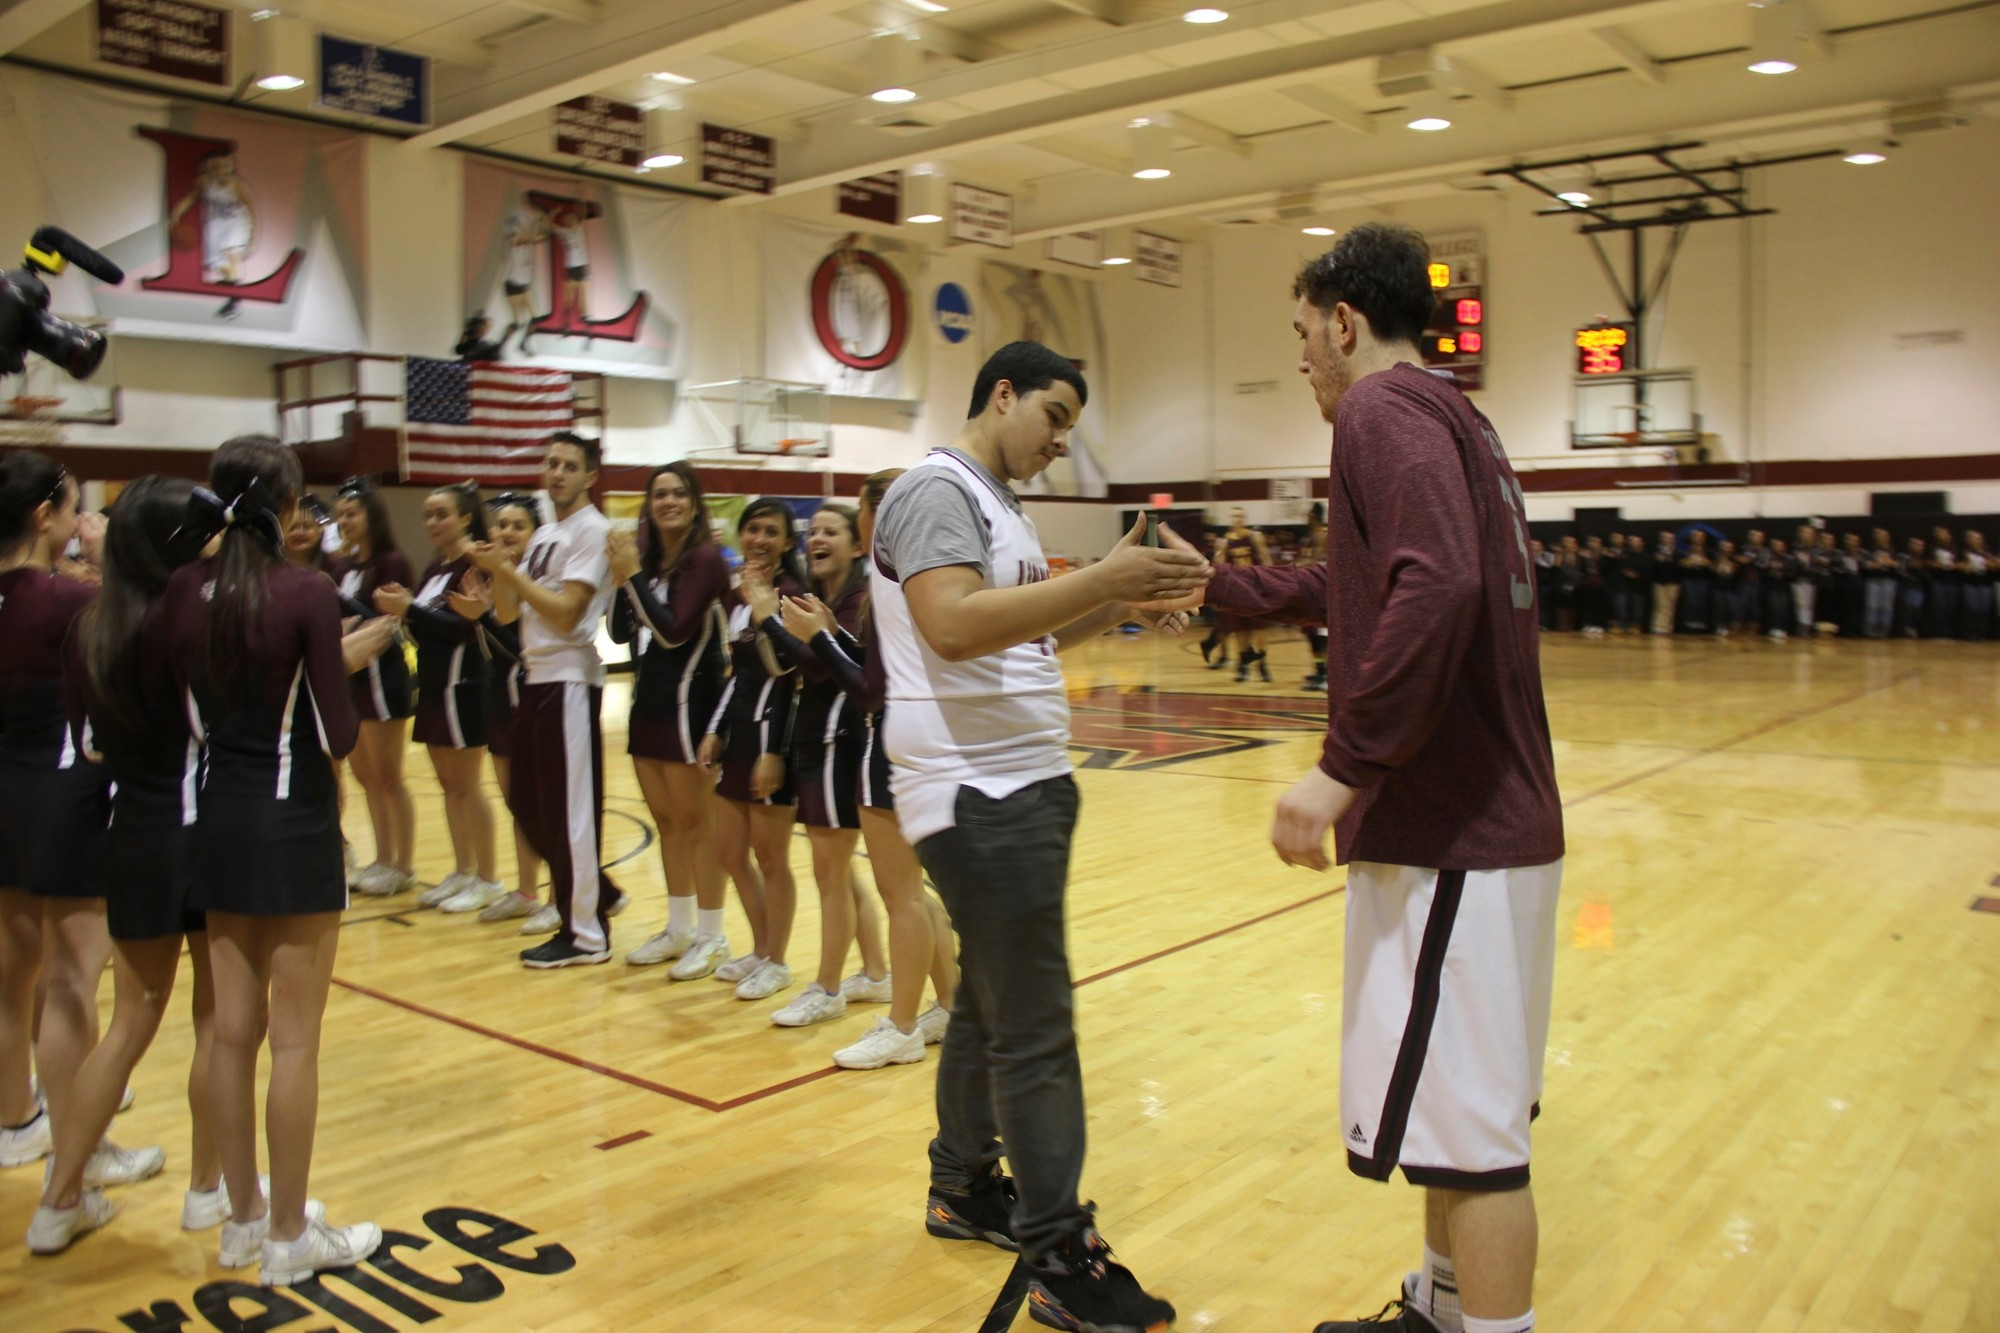 Alexander Perez, 14, left, was welcomed by Molloy basketball player Charlie Marquardt to the team. Molloy made Perez an honorary member of the team in conjunction with the Make-A-Wish Foundation.